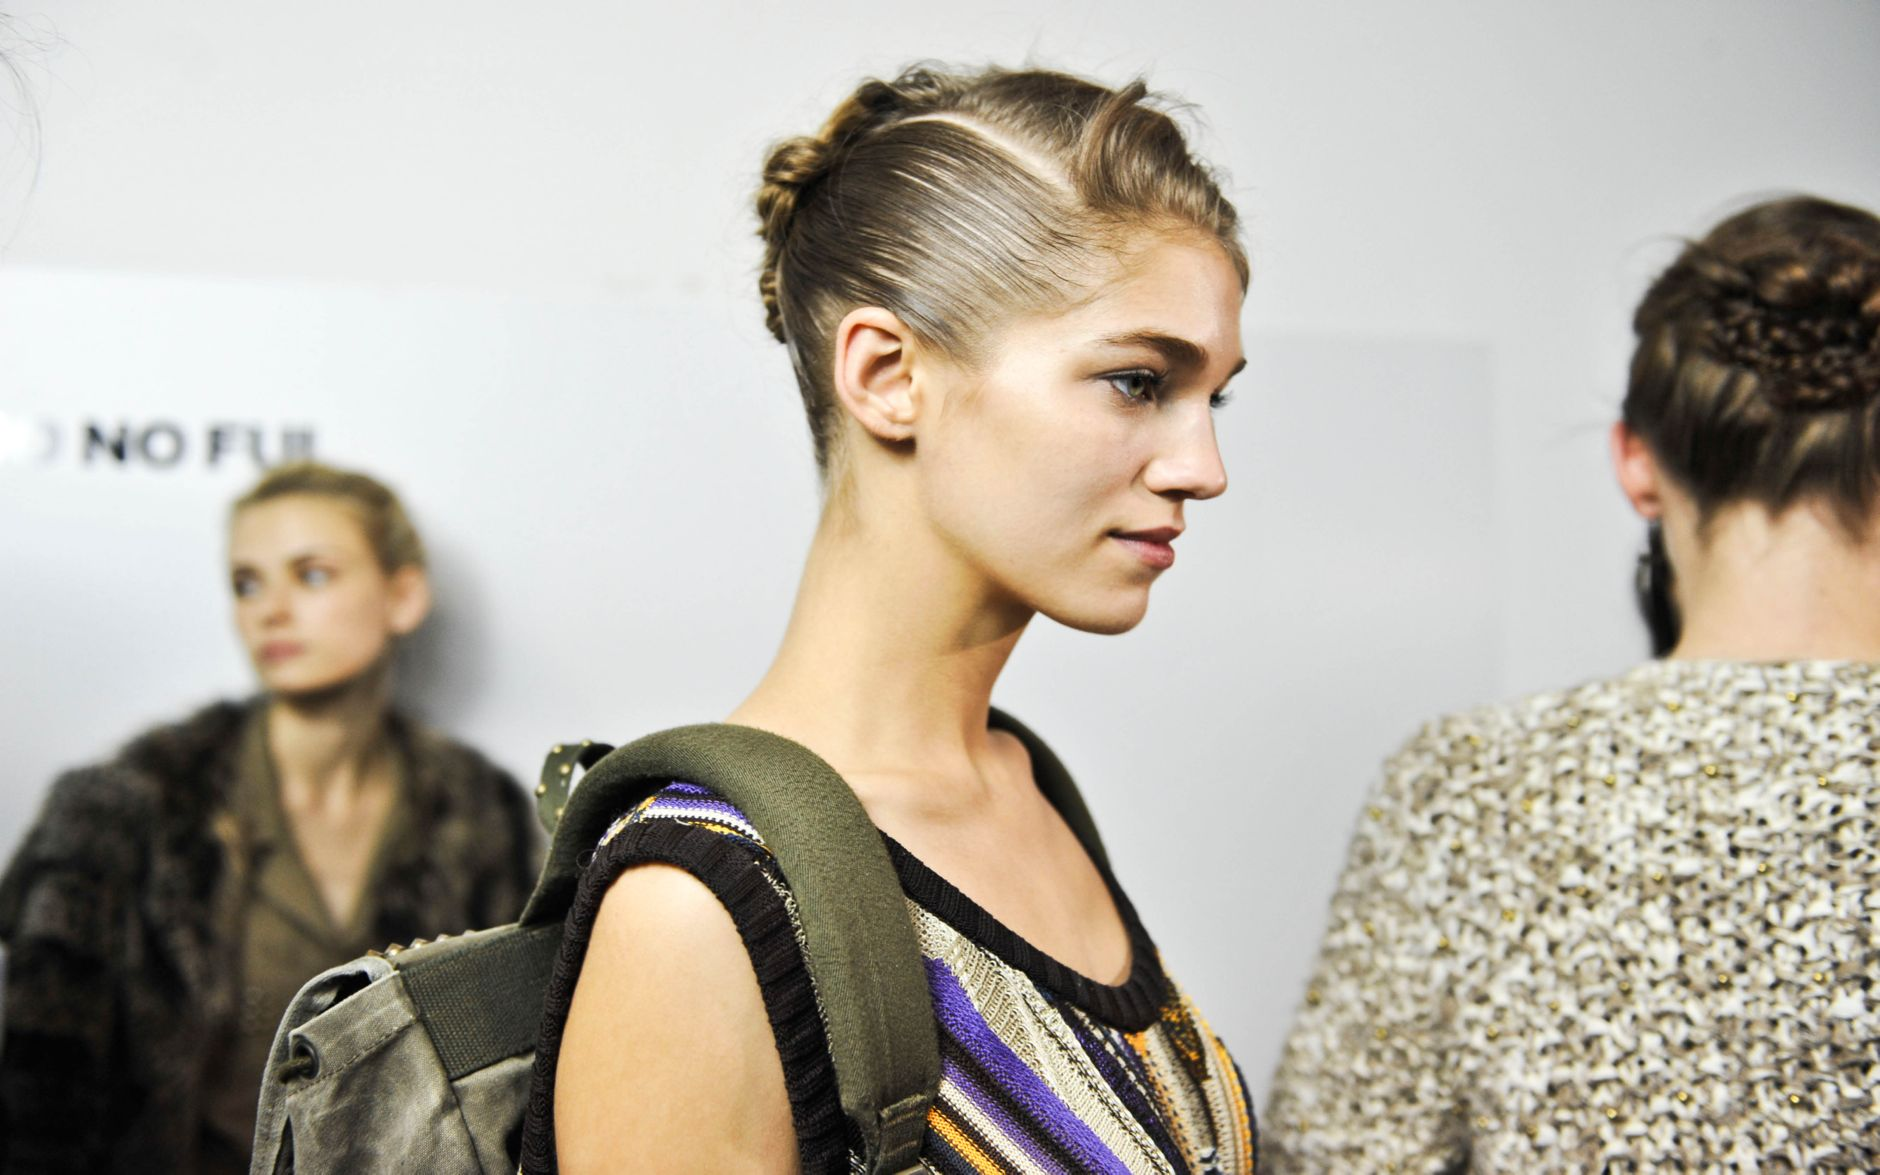 Backstage Jo No Fui Fashion Model Milano Fashion Week